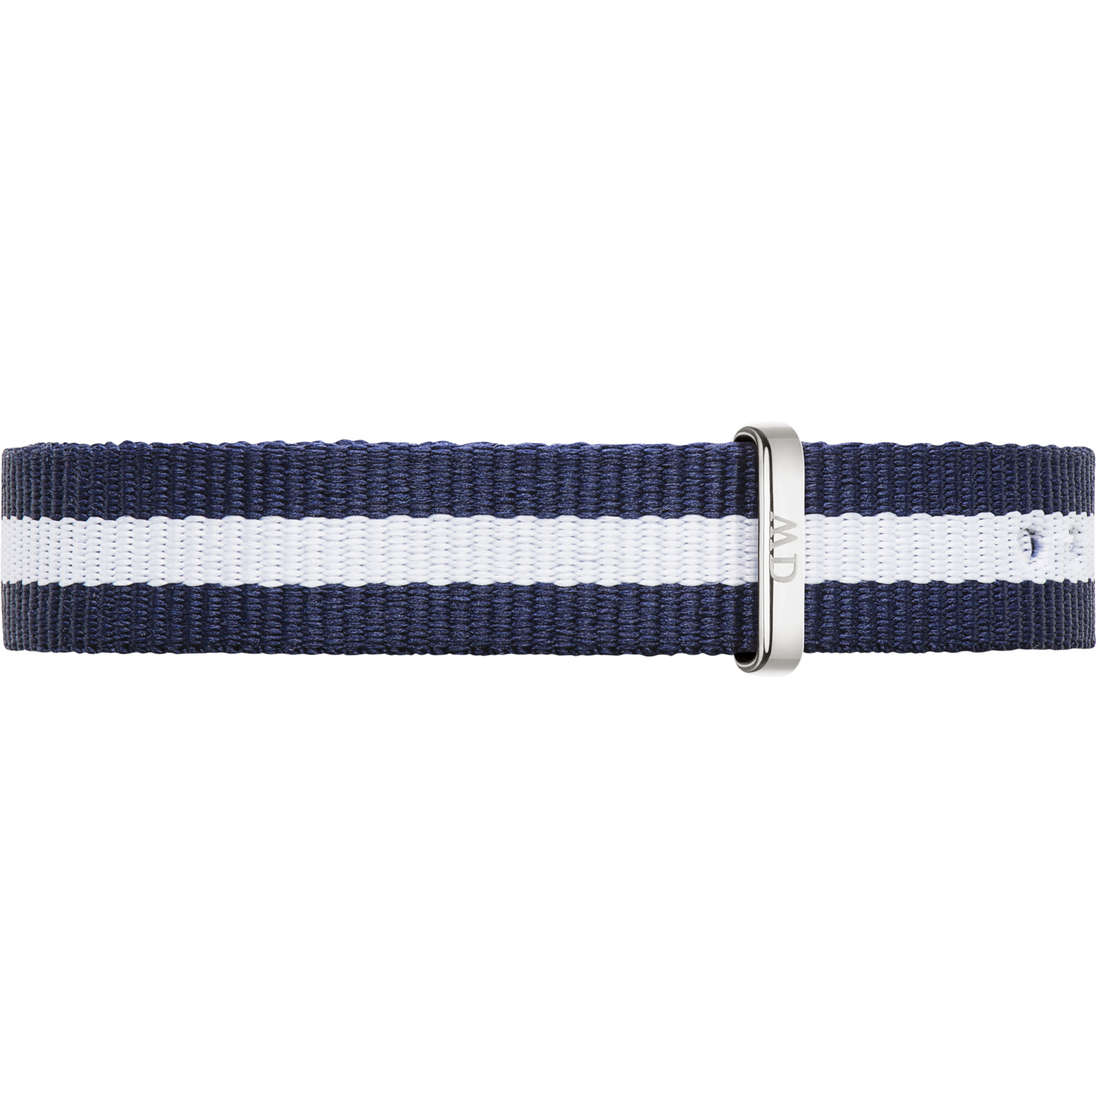 watch watch bands unisex Daniel Wellington Classy Glasgow DW00200082